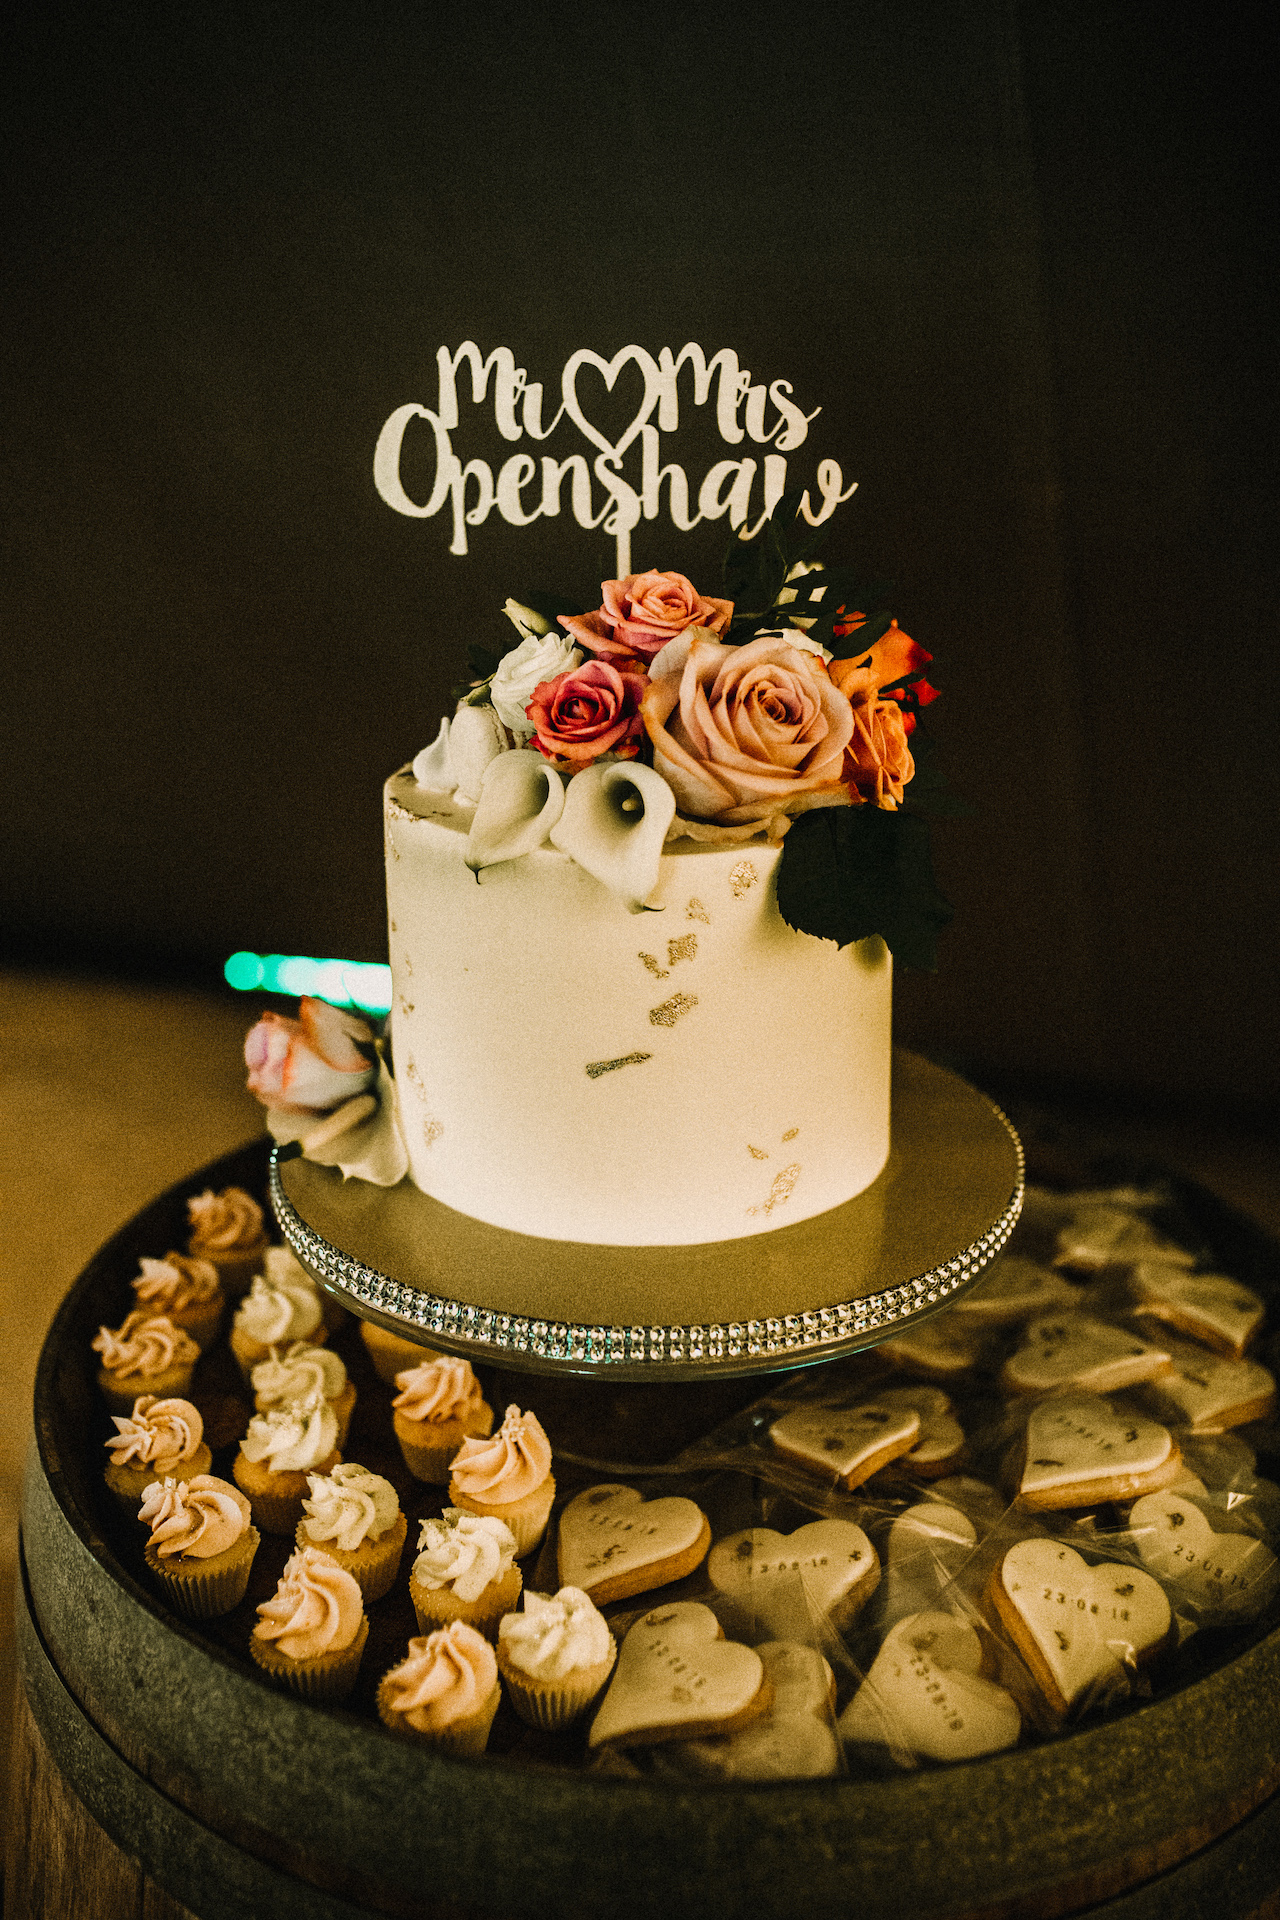 PapaKåta couple Hayley & Luke's Teepee Wedding in Ascott-Under-Wychwood, Oxon captured by Carla Blain Photography- Wedding cake with personalised cake topper